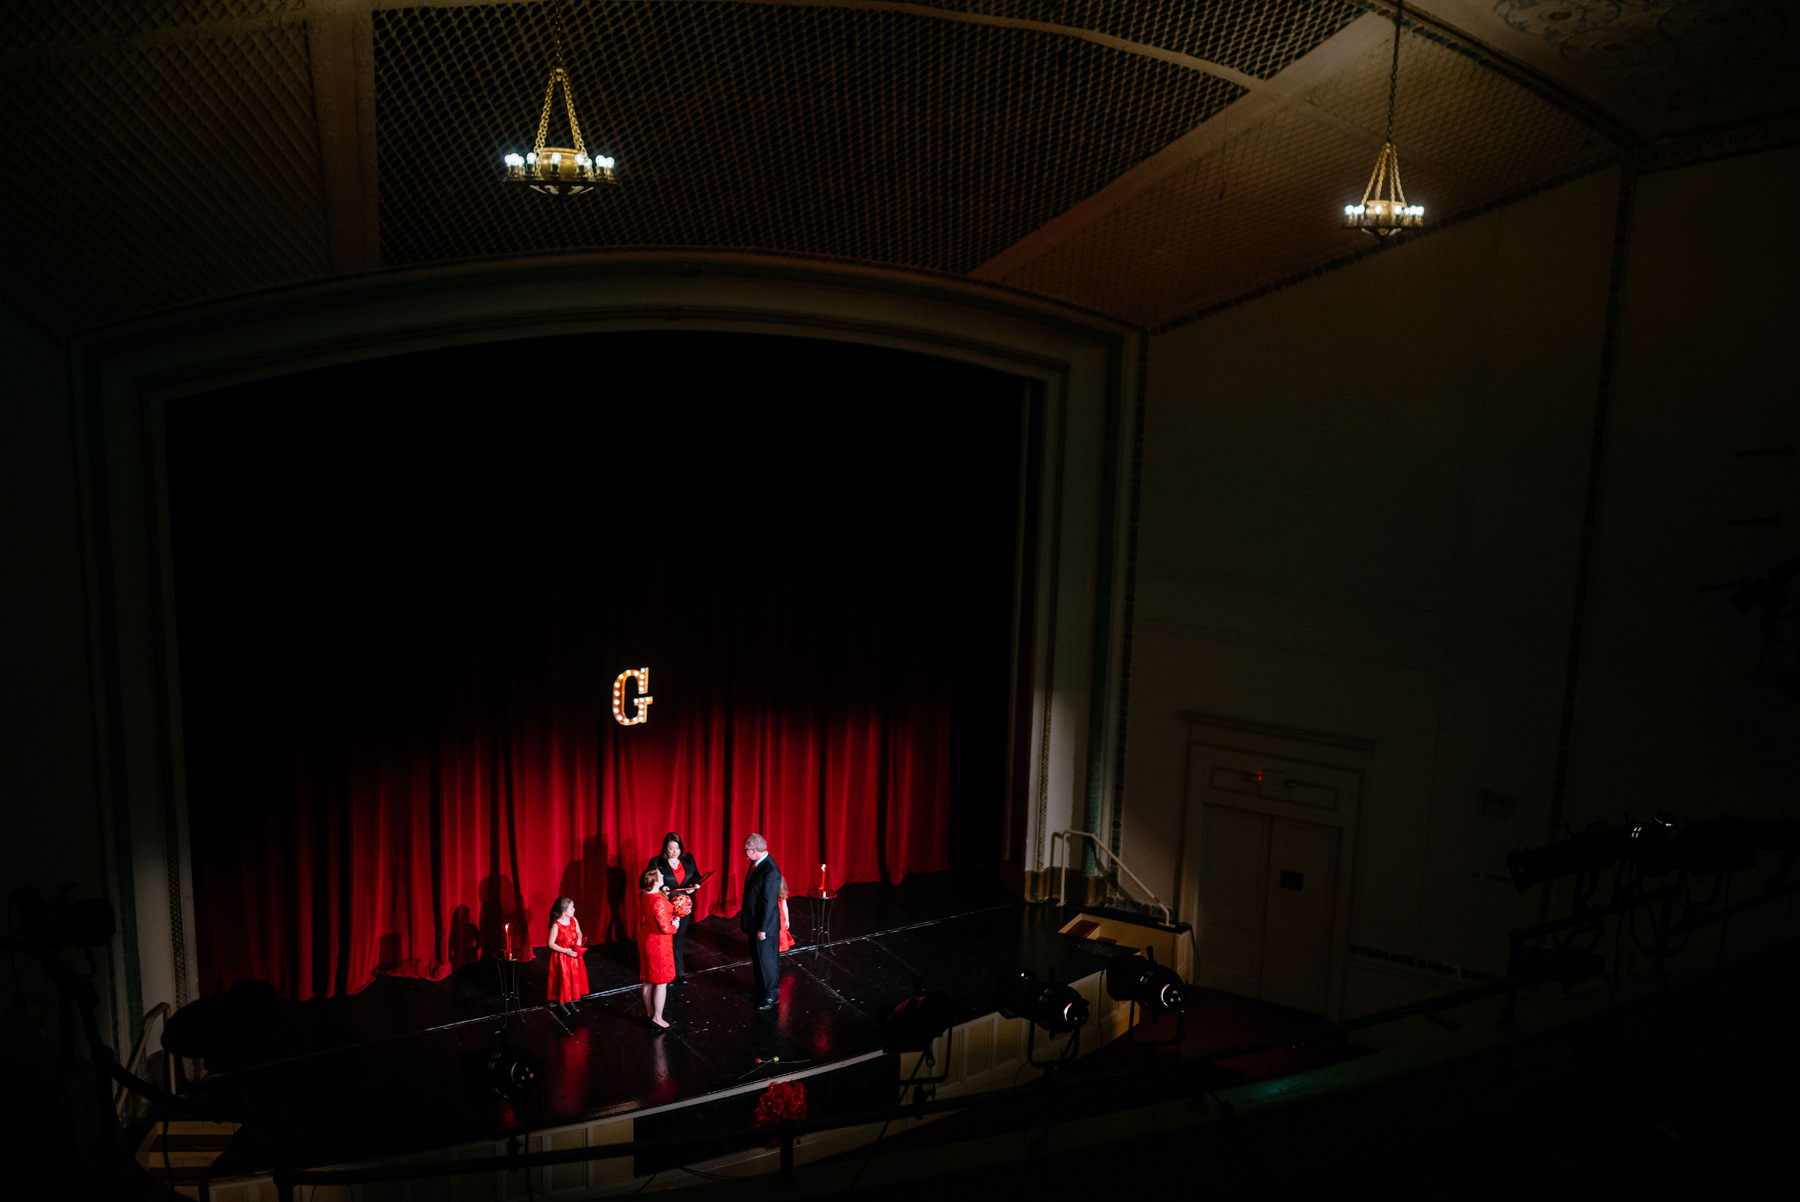 leap day wedding ceremony in a theater